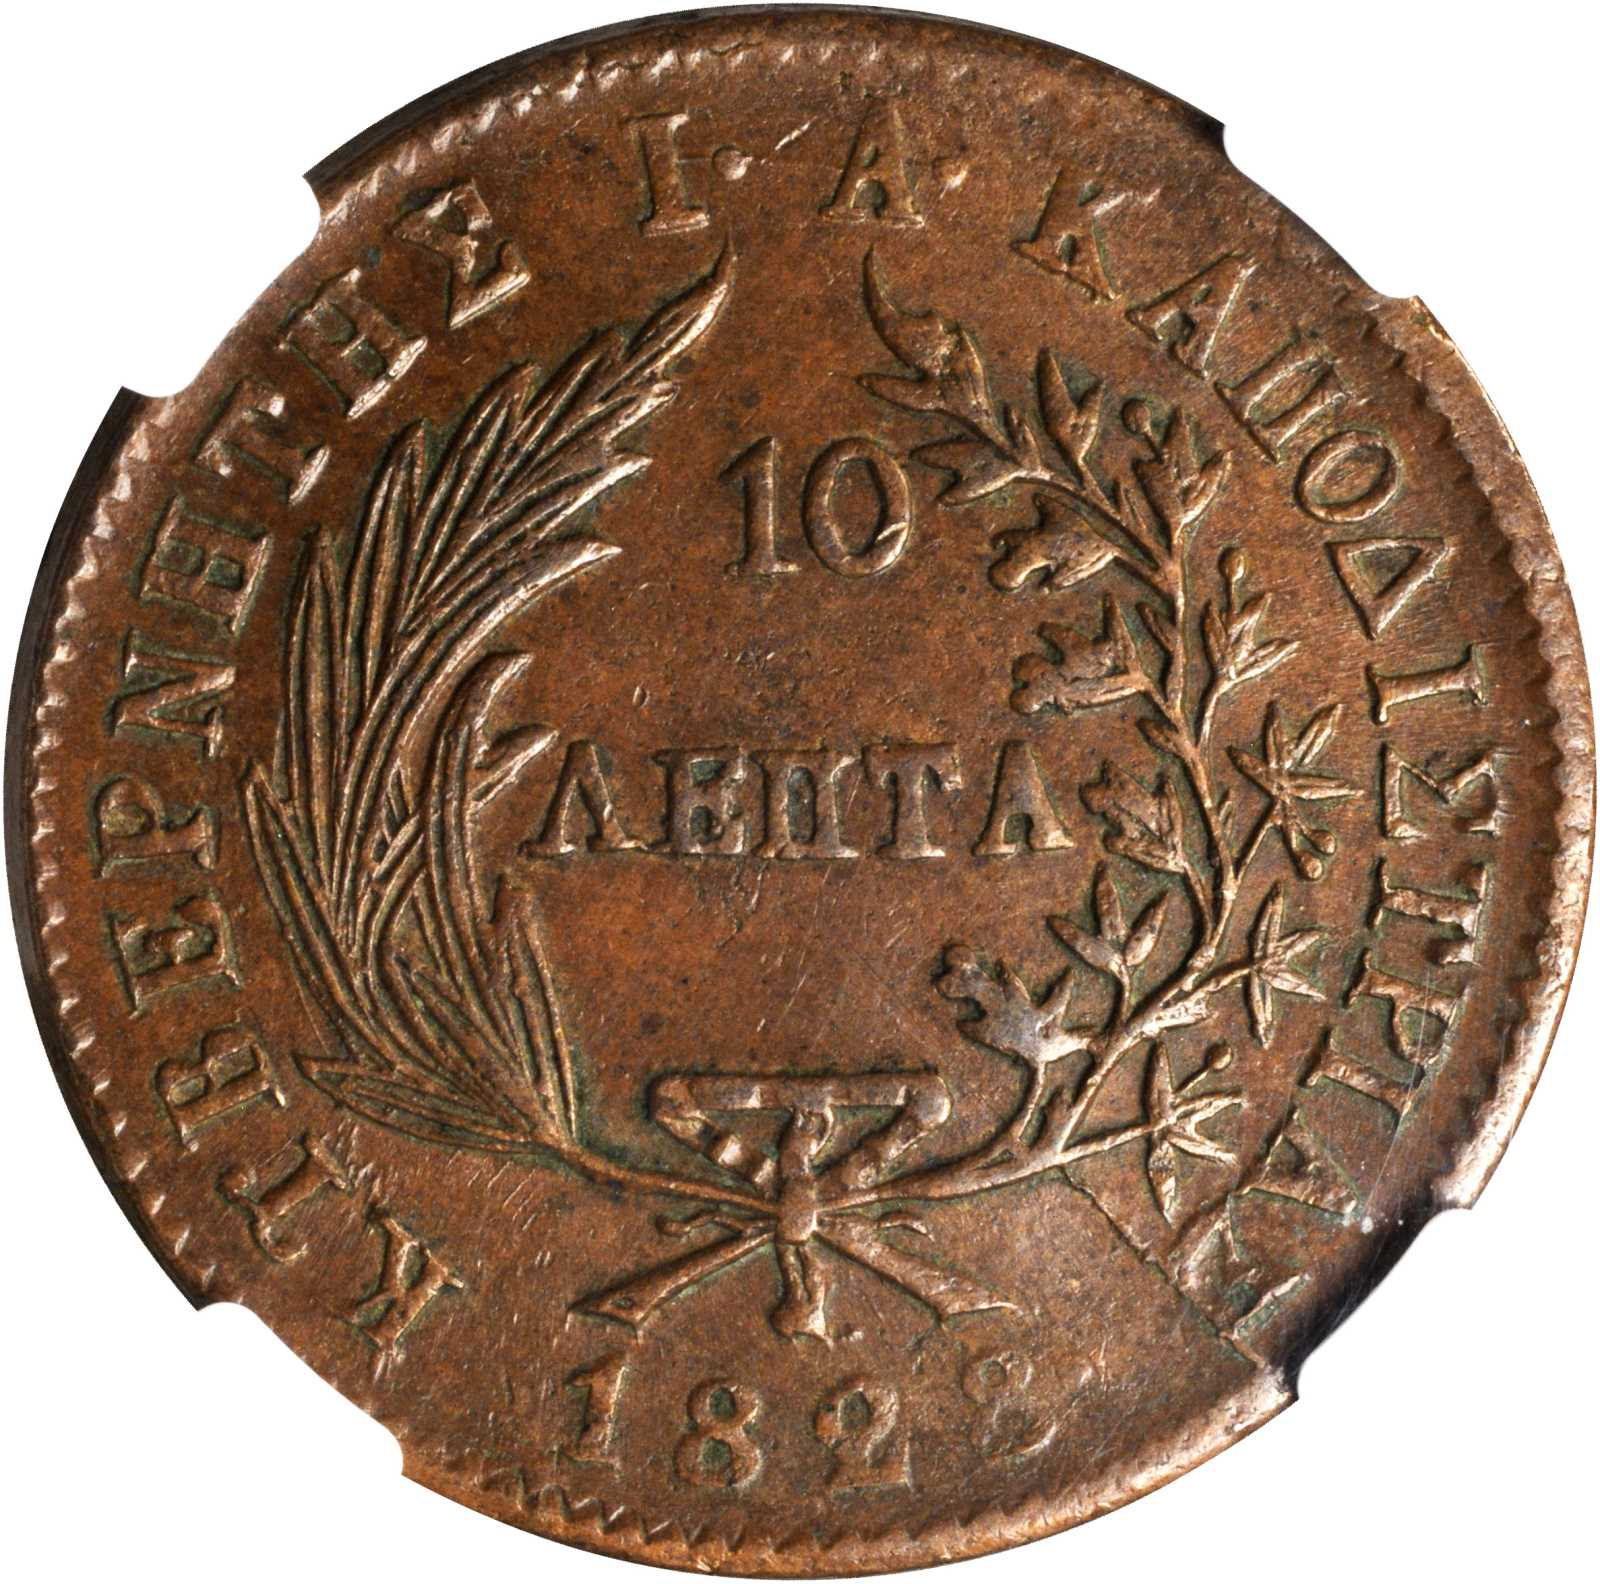 Ten Lepta (Phoenix): Photo Greece 1828 10 lepta